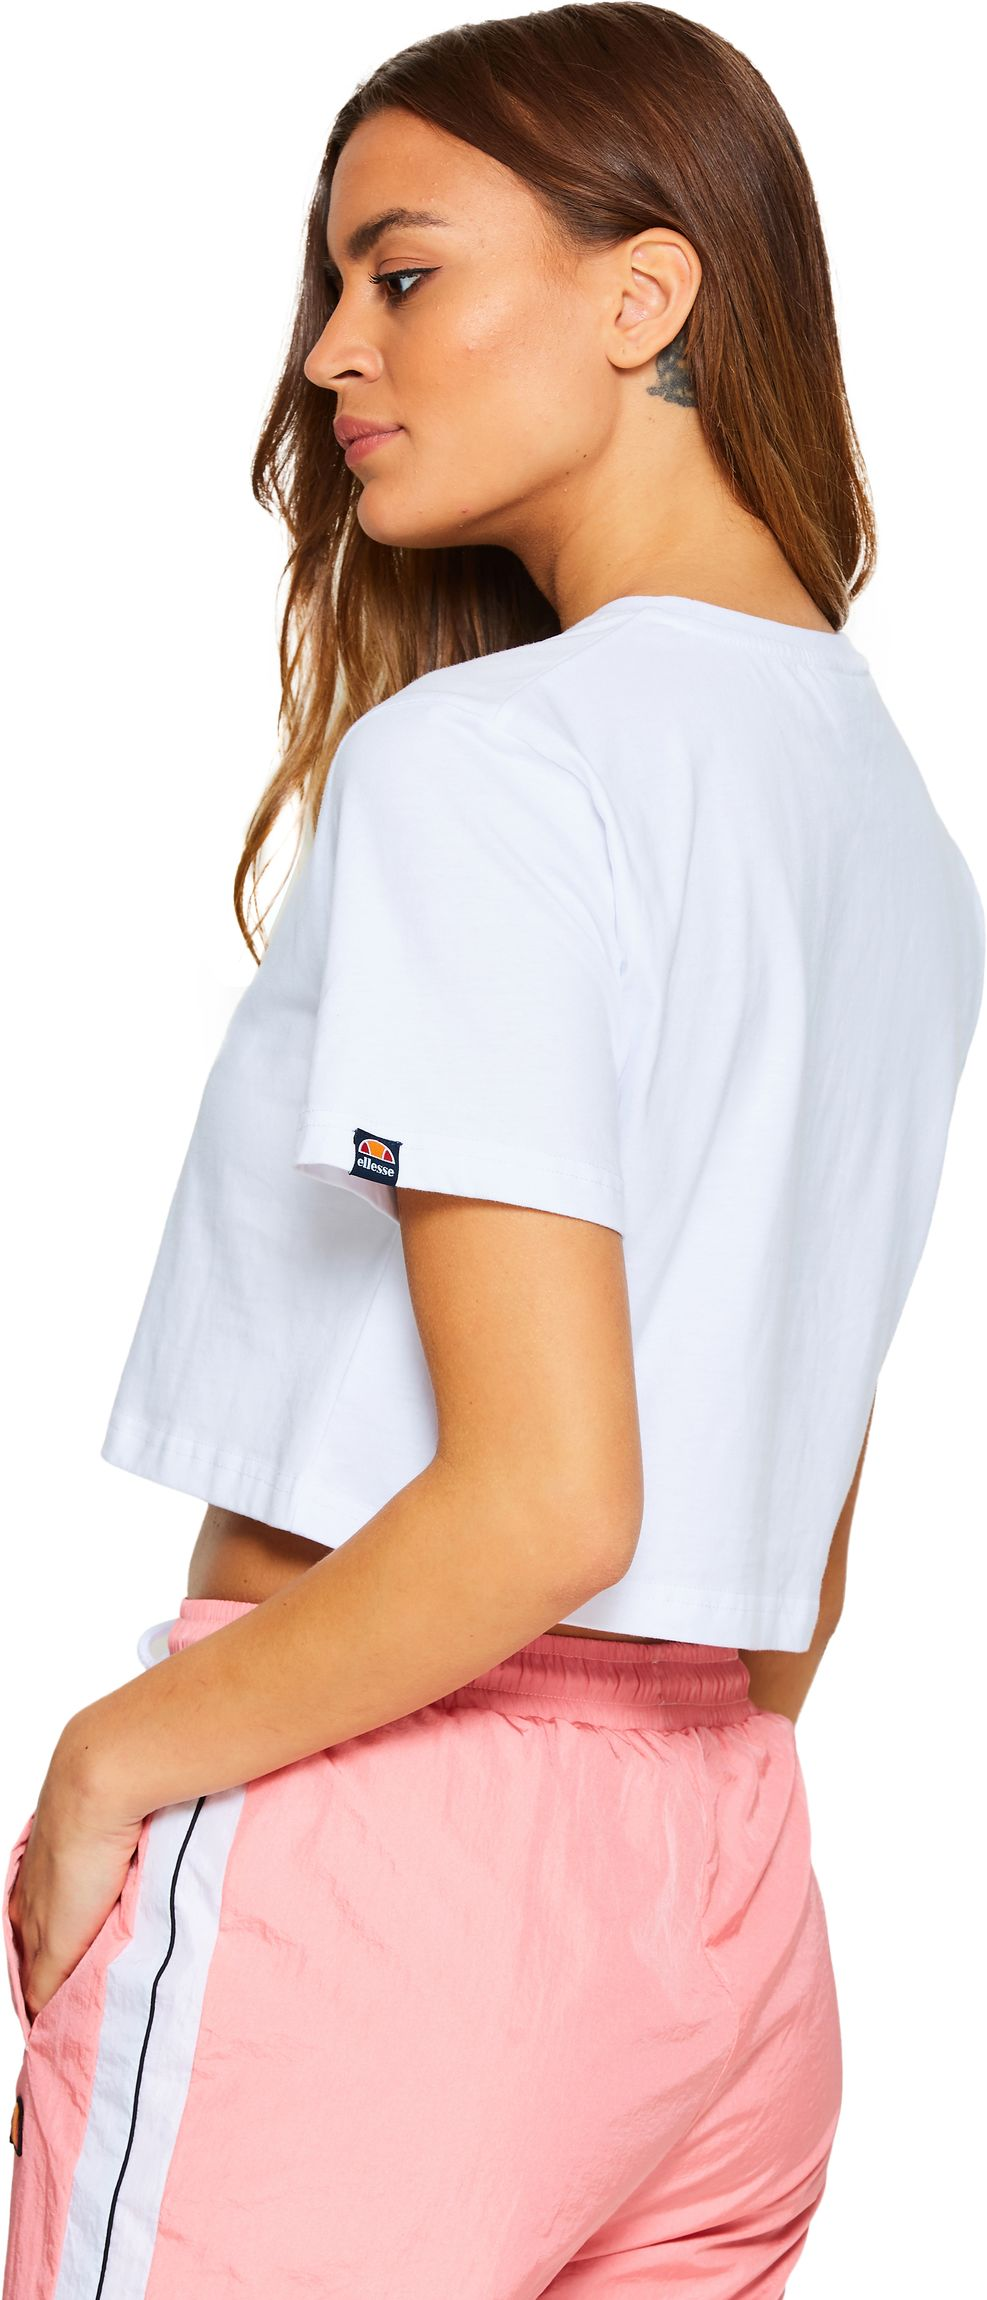 Ellesse-T-Shirts-amp-Tops-Women-039-s-Assorted-Fit-Styles thumbnail 54